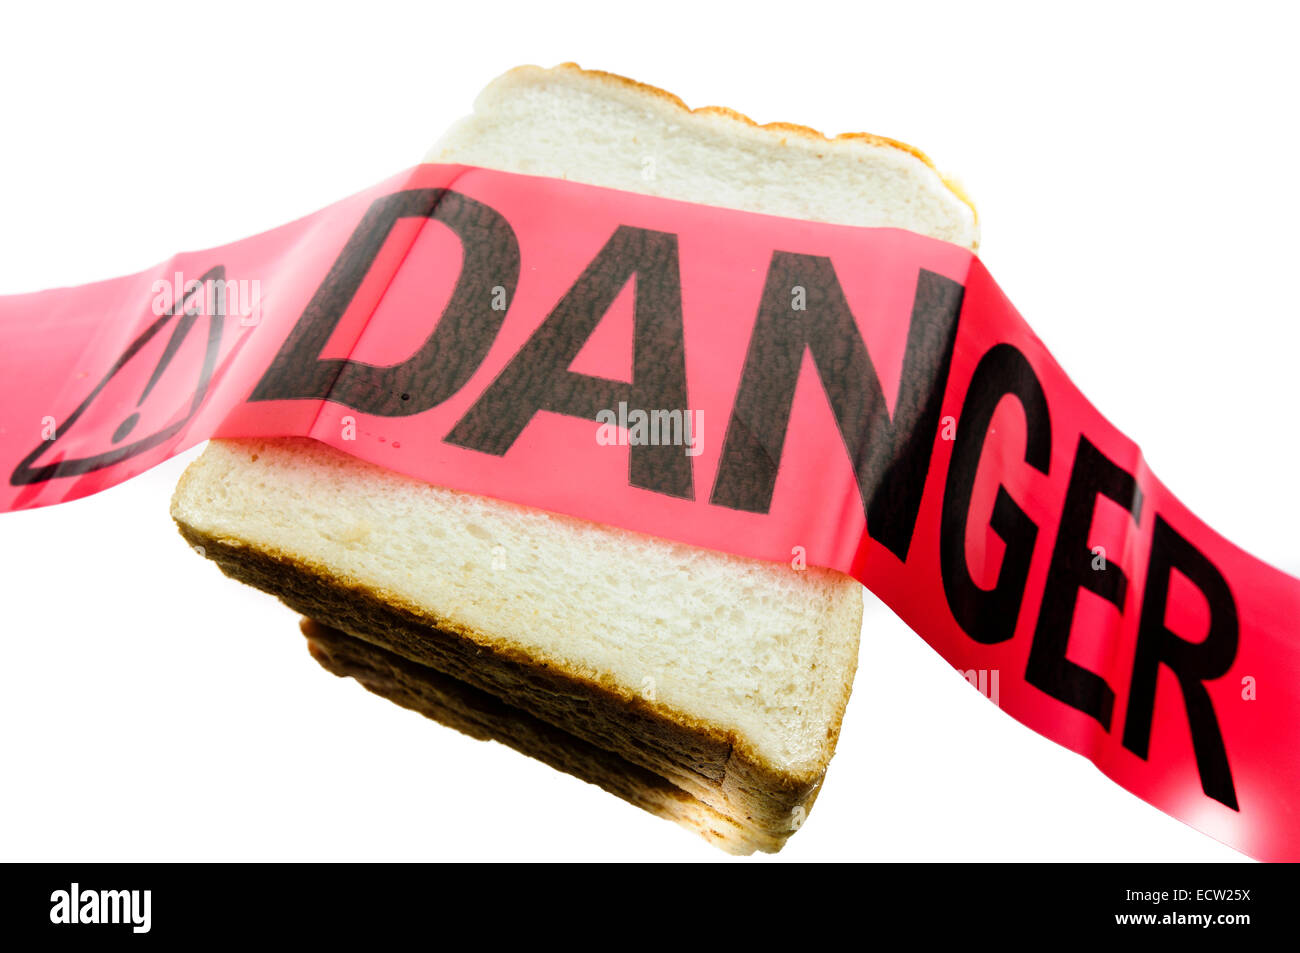 Danger tape placed over white bread, to signify the danger of gluten to people with coeliac disease - Stock Image